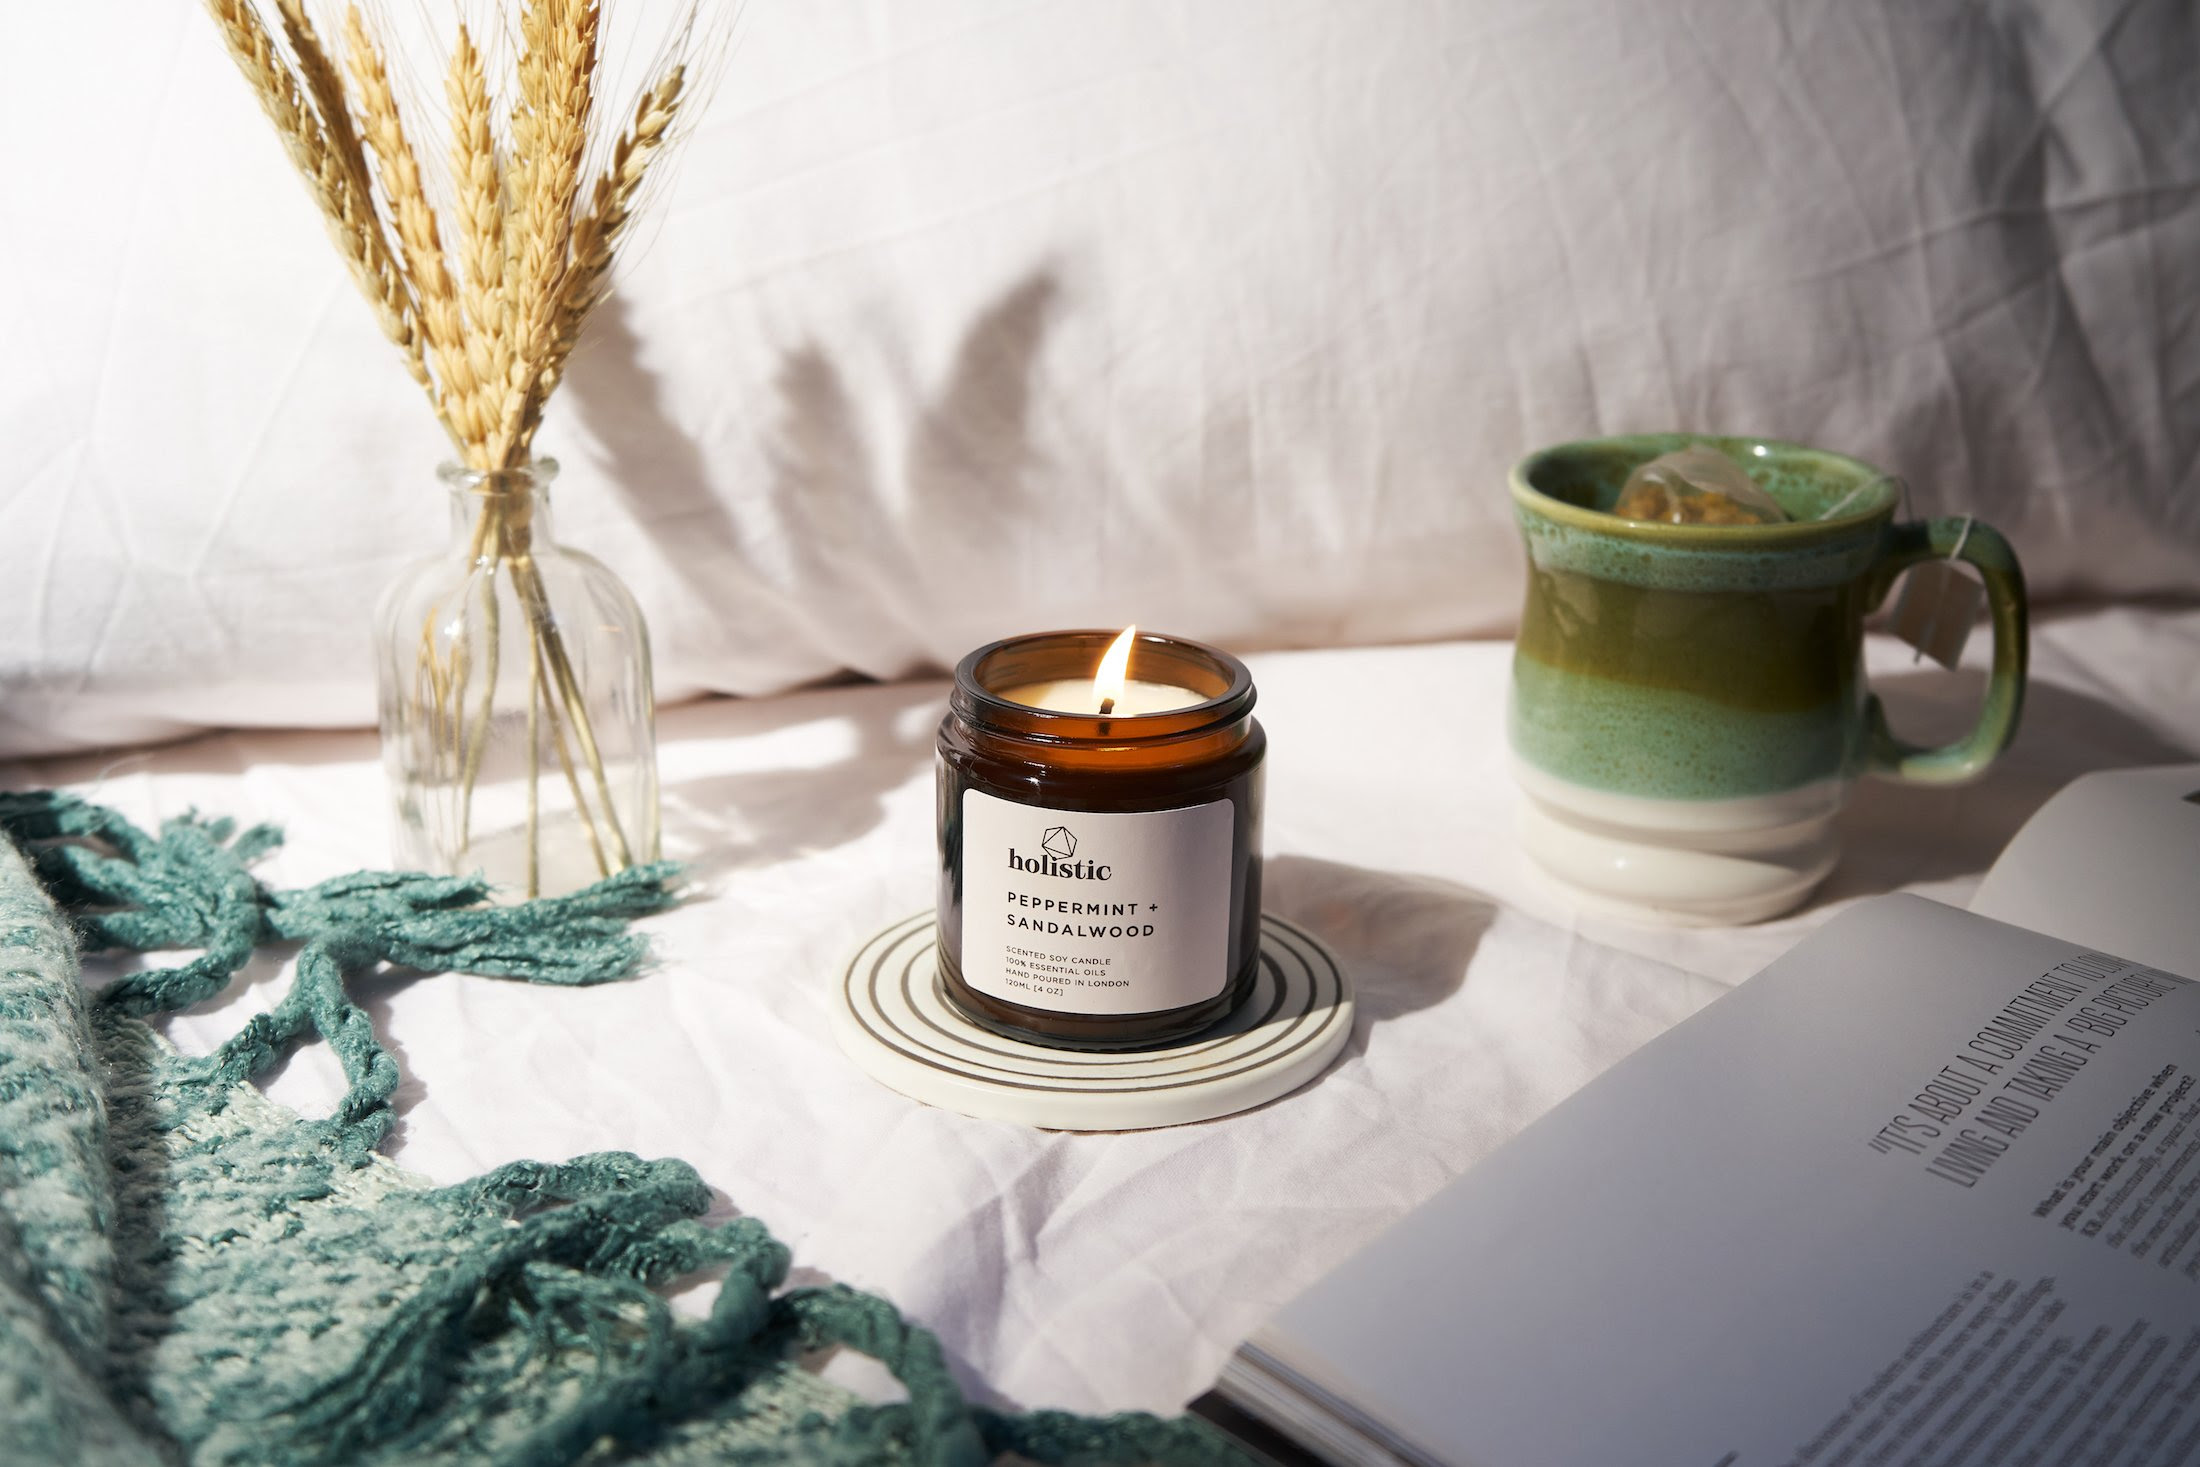 Fragranced candles from Holistic London for the adventurous